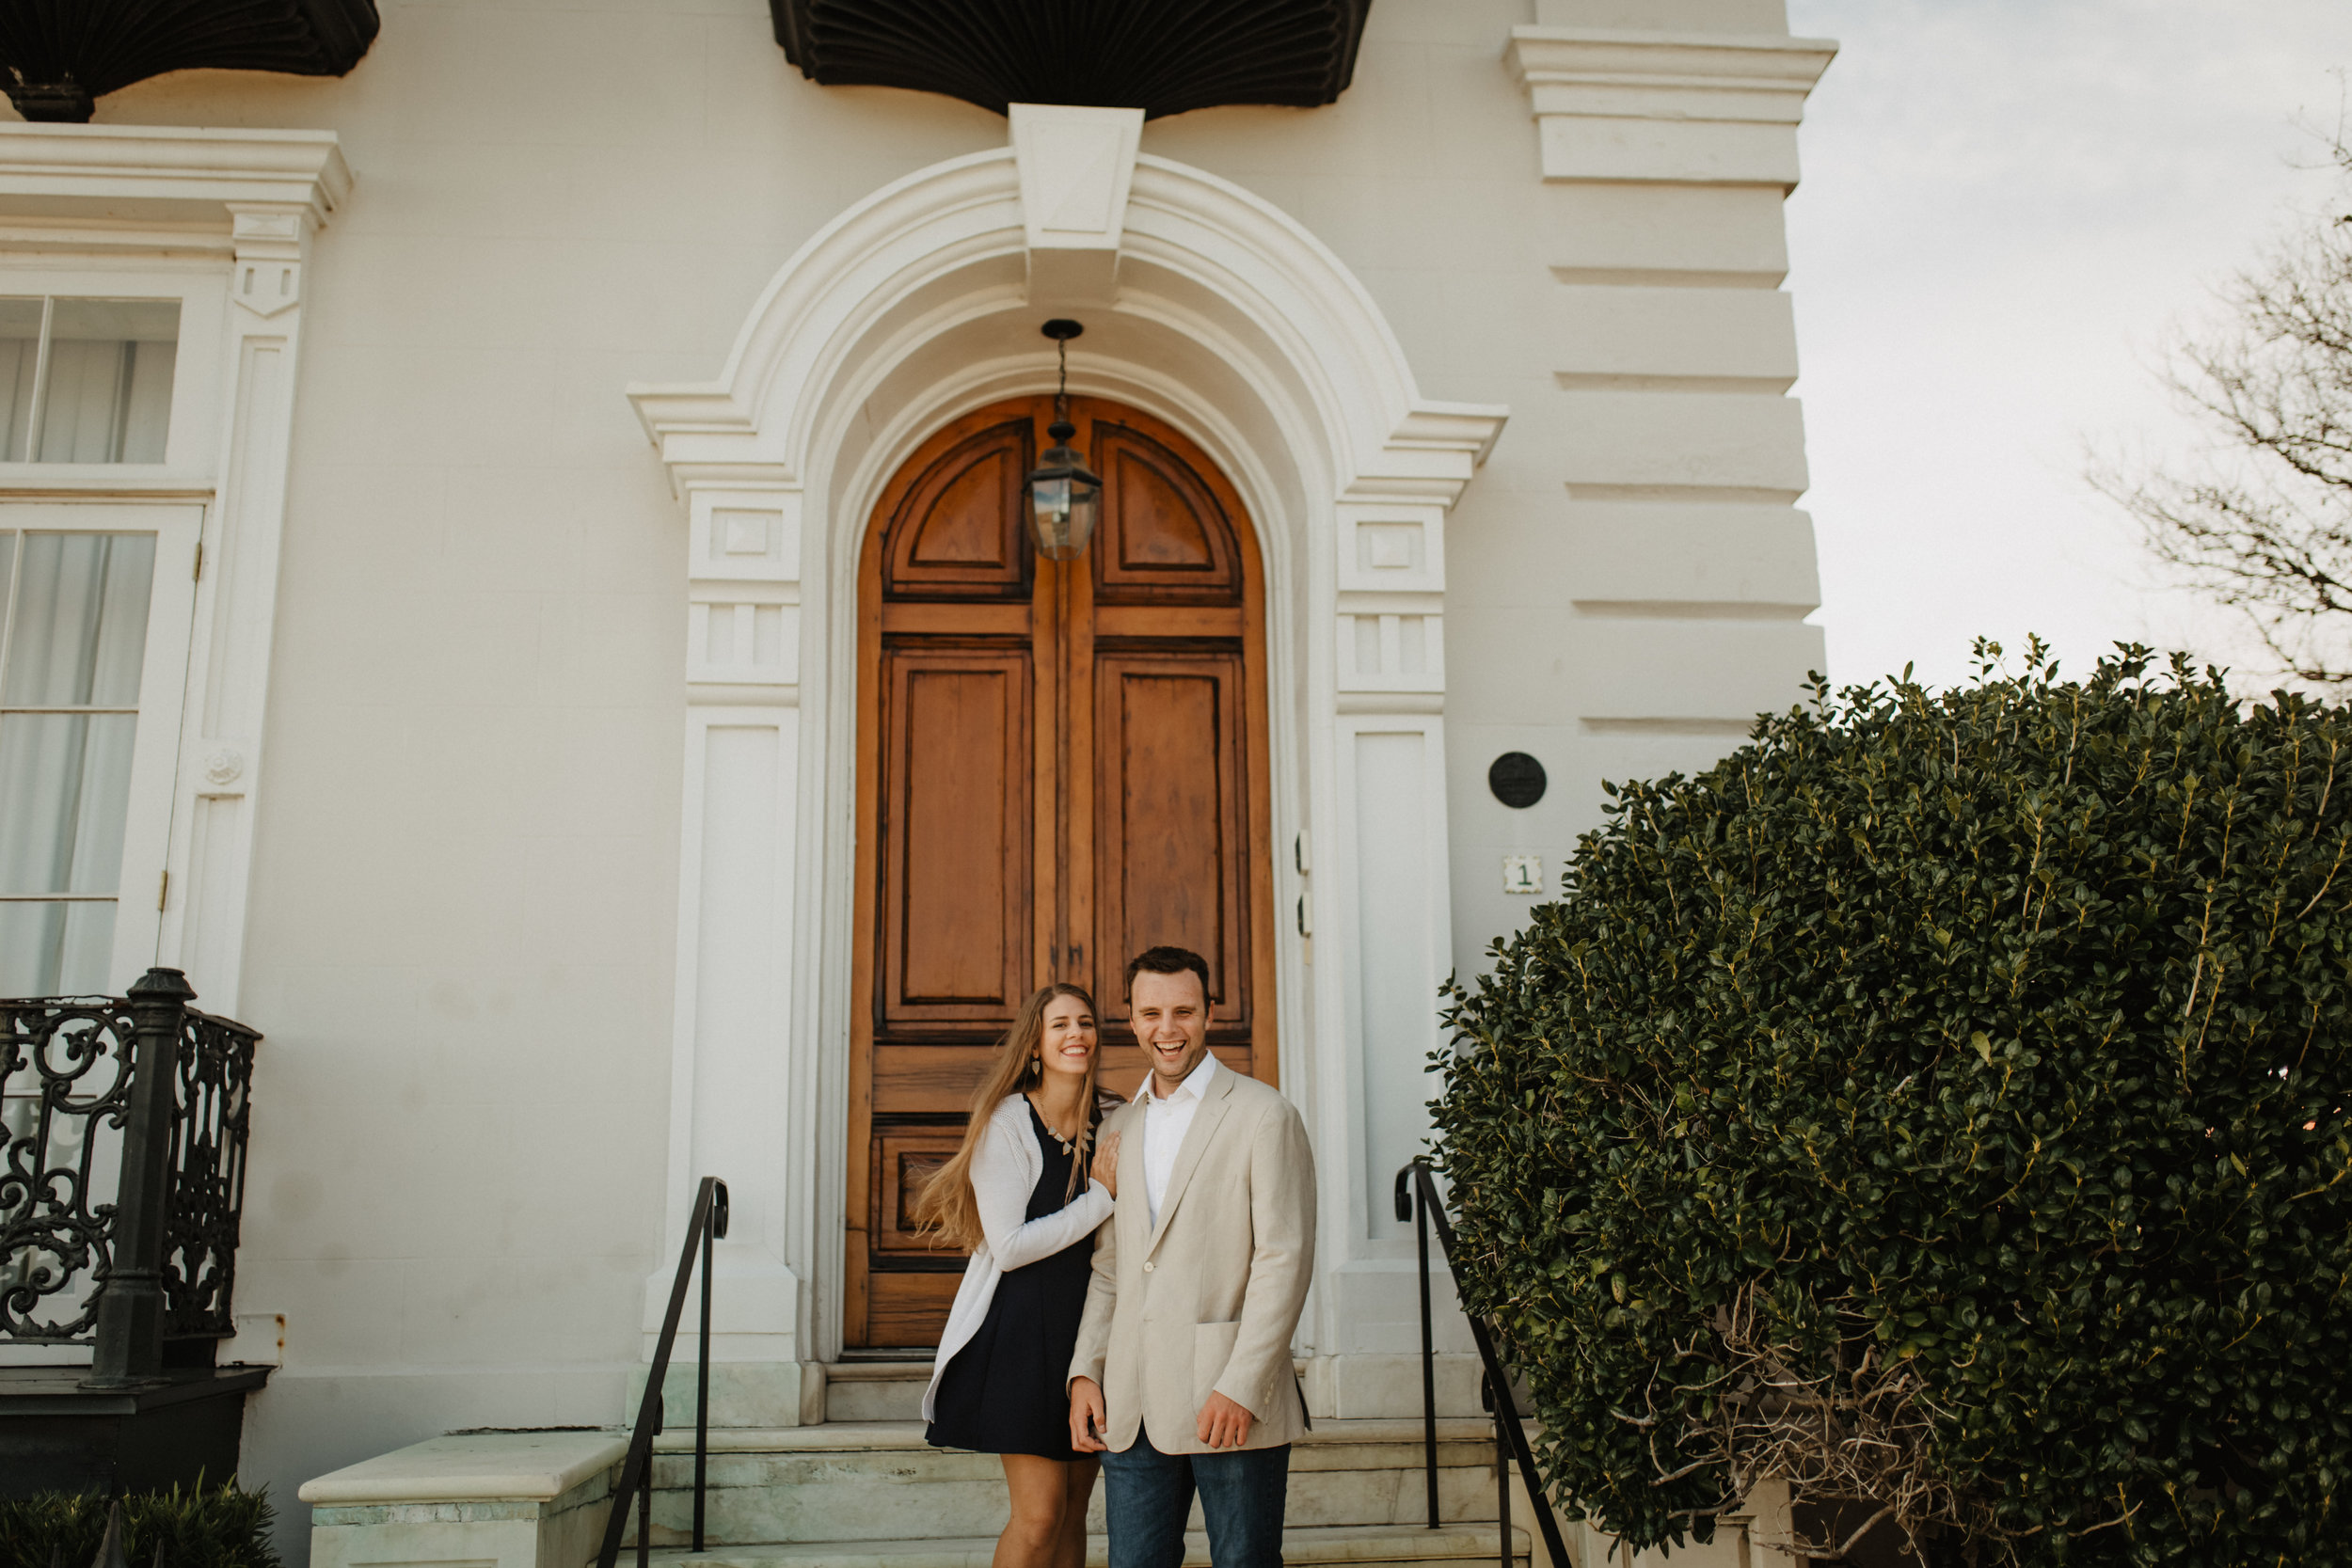 ShadowShinePictures-RachelDavid-Eudy-Engagement-Photography-146.jpg